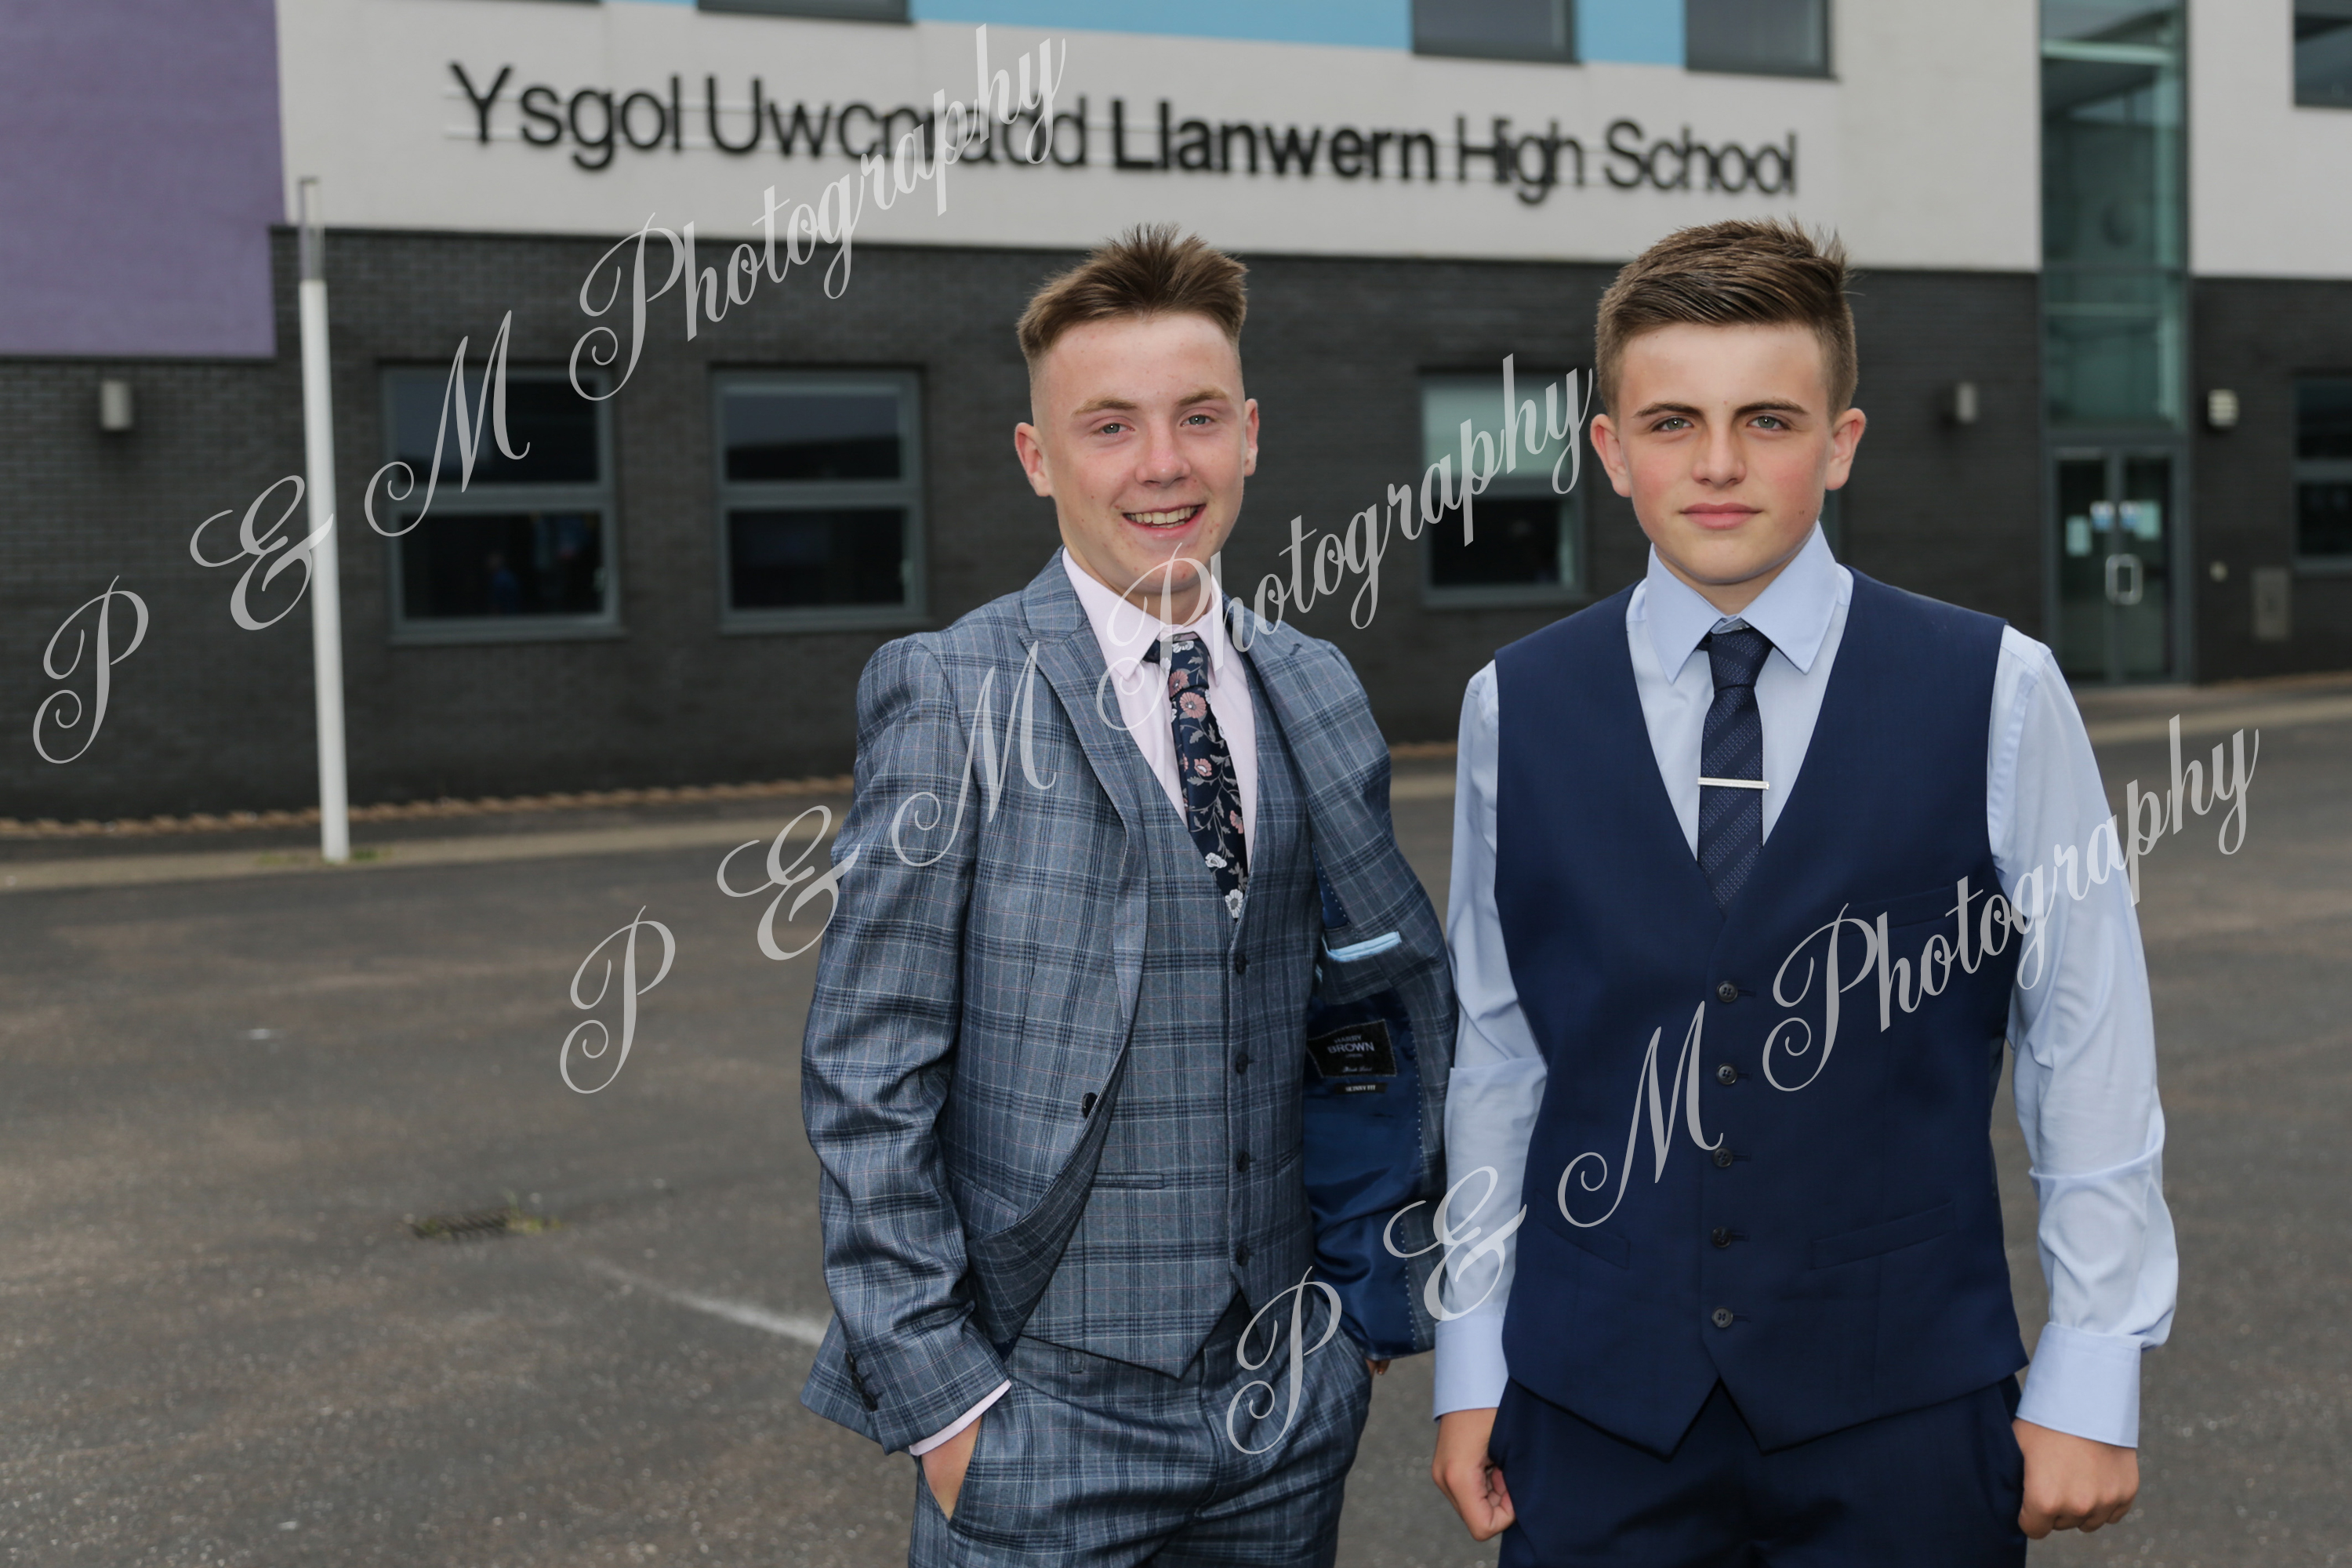 Llanwern-High-School-04